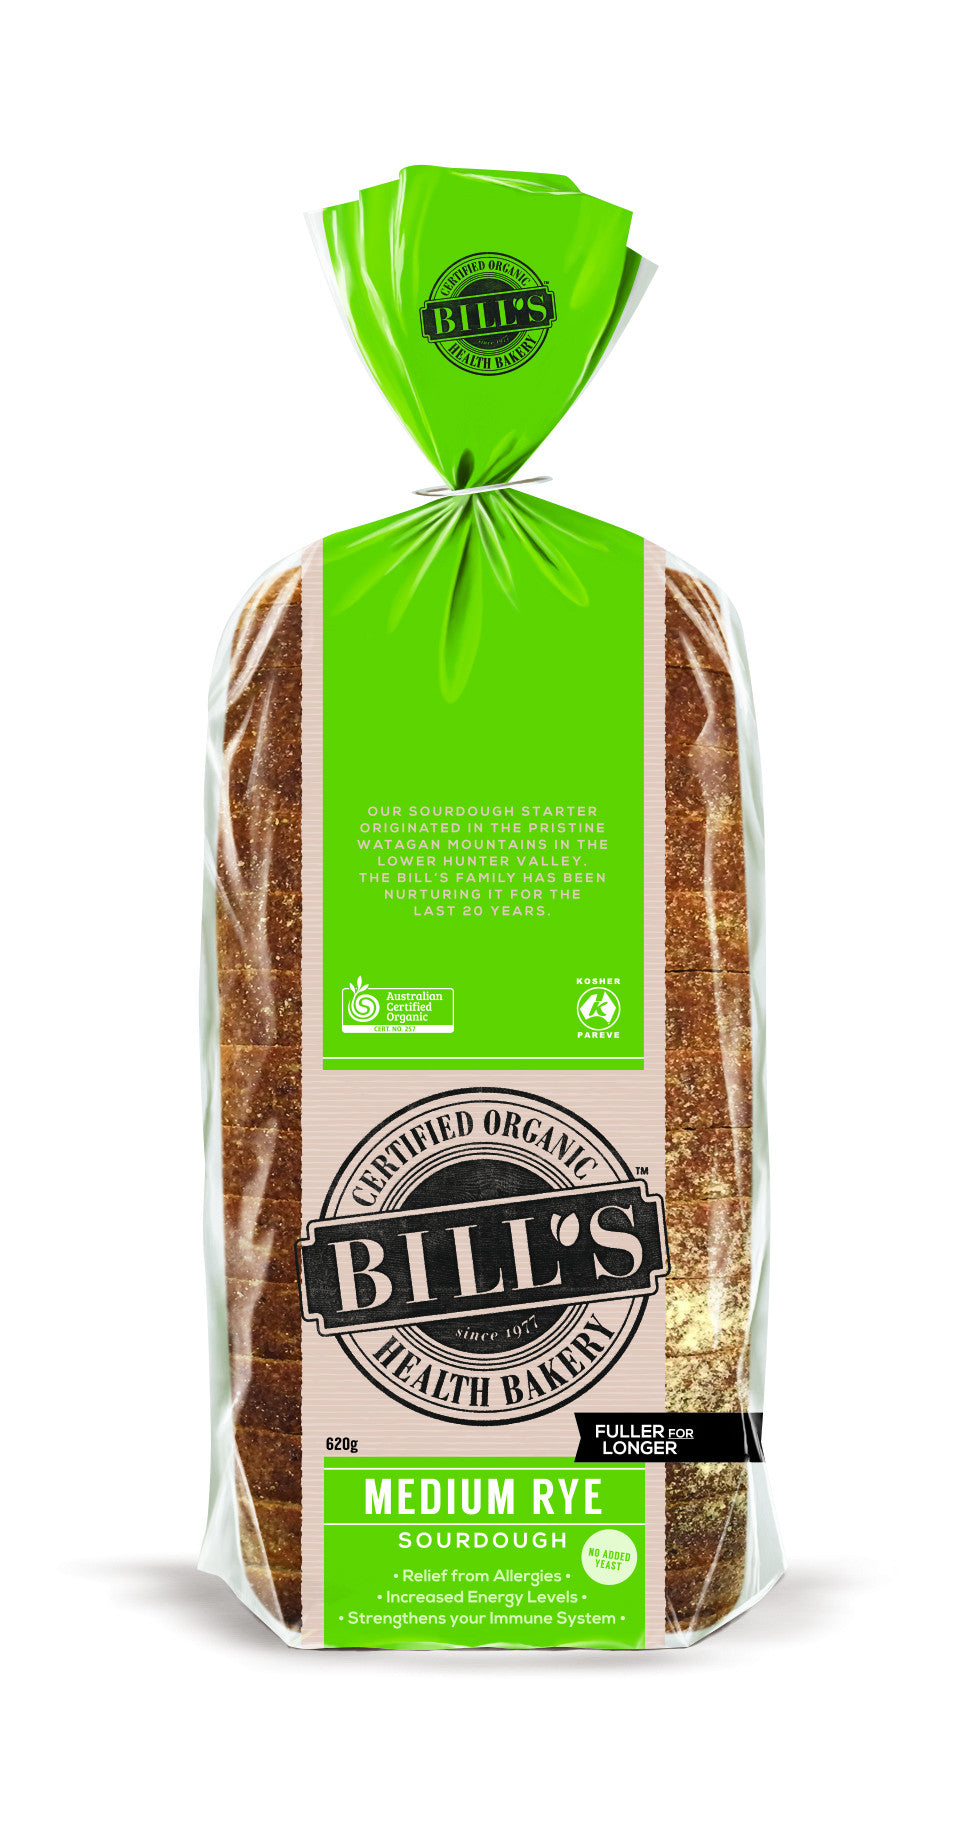 Bills Organic Bread - Medium Rye Sourdough 620g